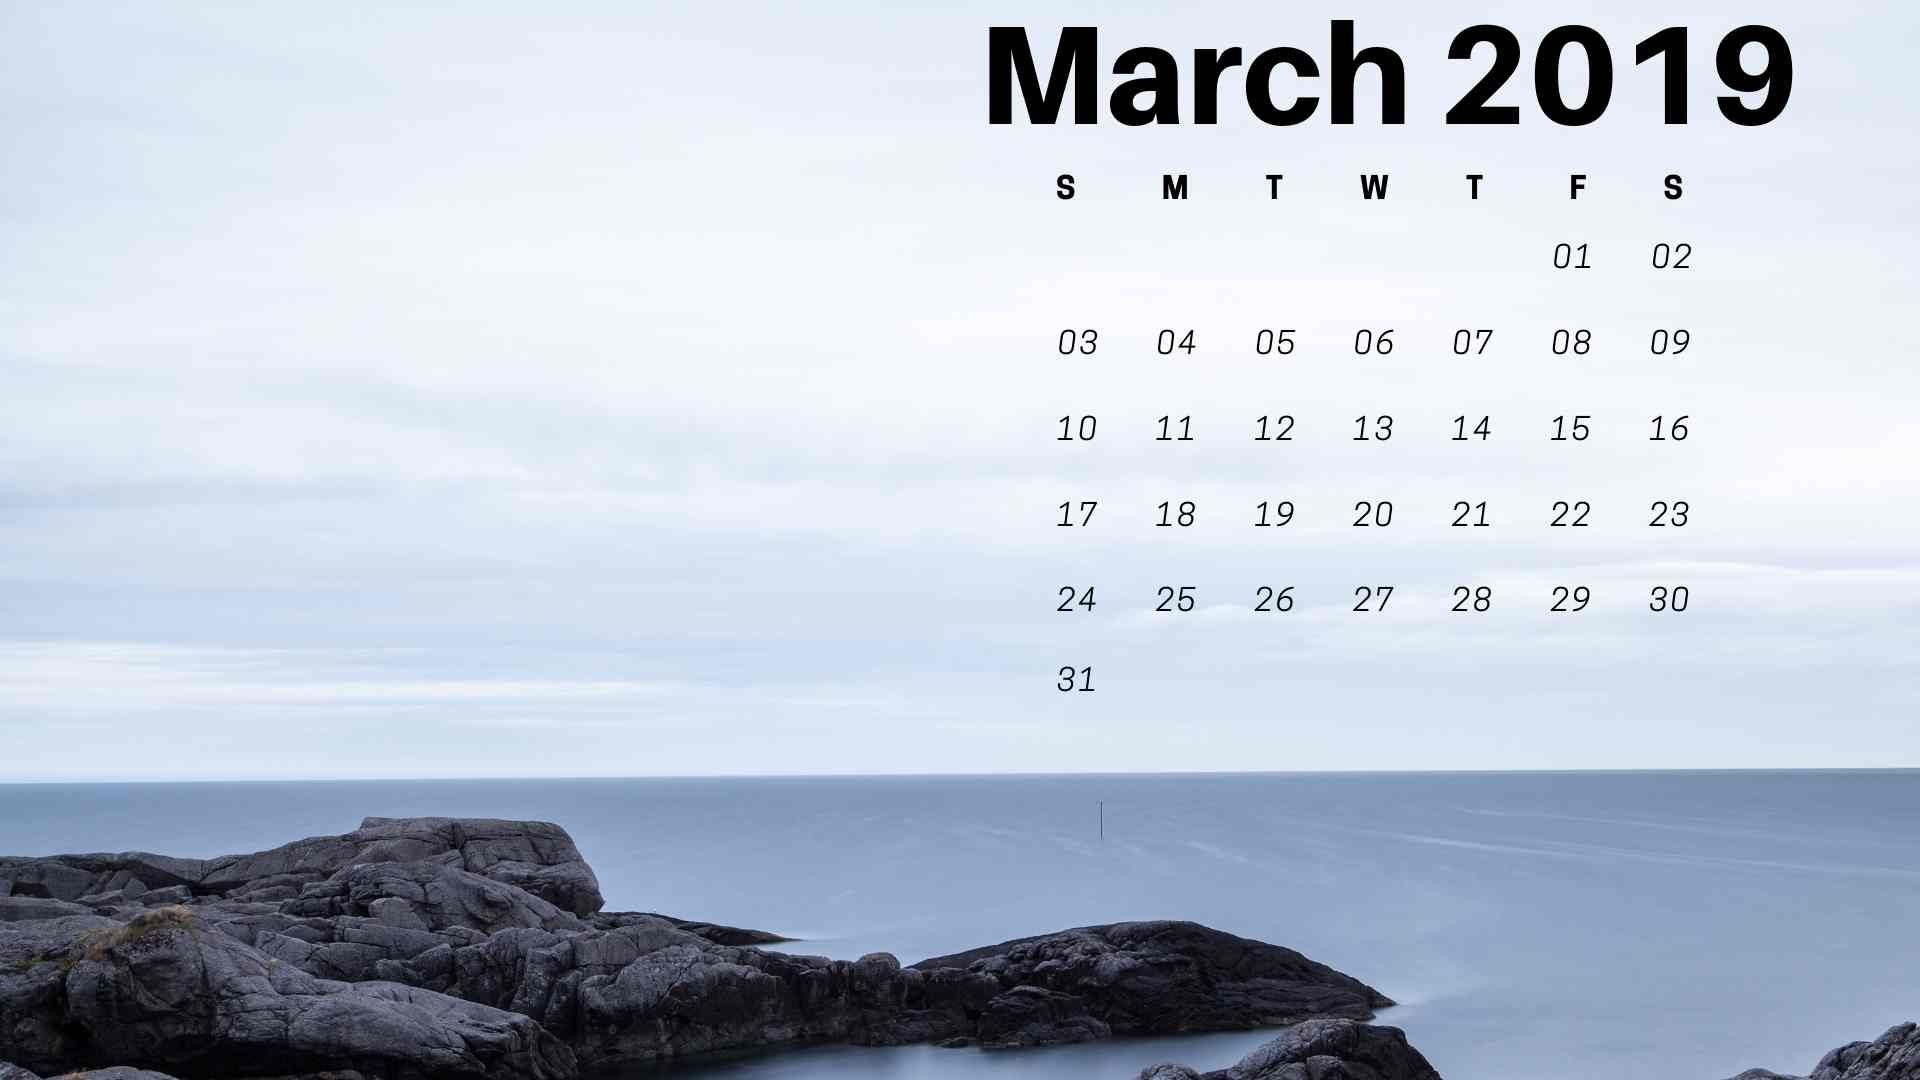 March Calendar Desktop Wallpaper Más Arriba-a-fecha March 2019 Calendar Wallpaper Desktop March Calendar Calenda2019 Of March Calendar Desktop Wallpaper Más Reciente Women S Leadership Luncheon Milwaukee Mount Mary University